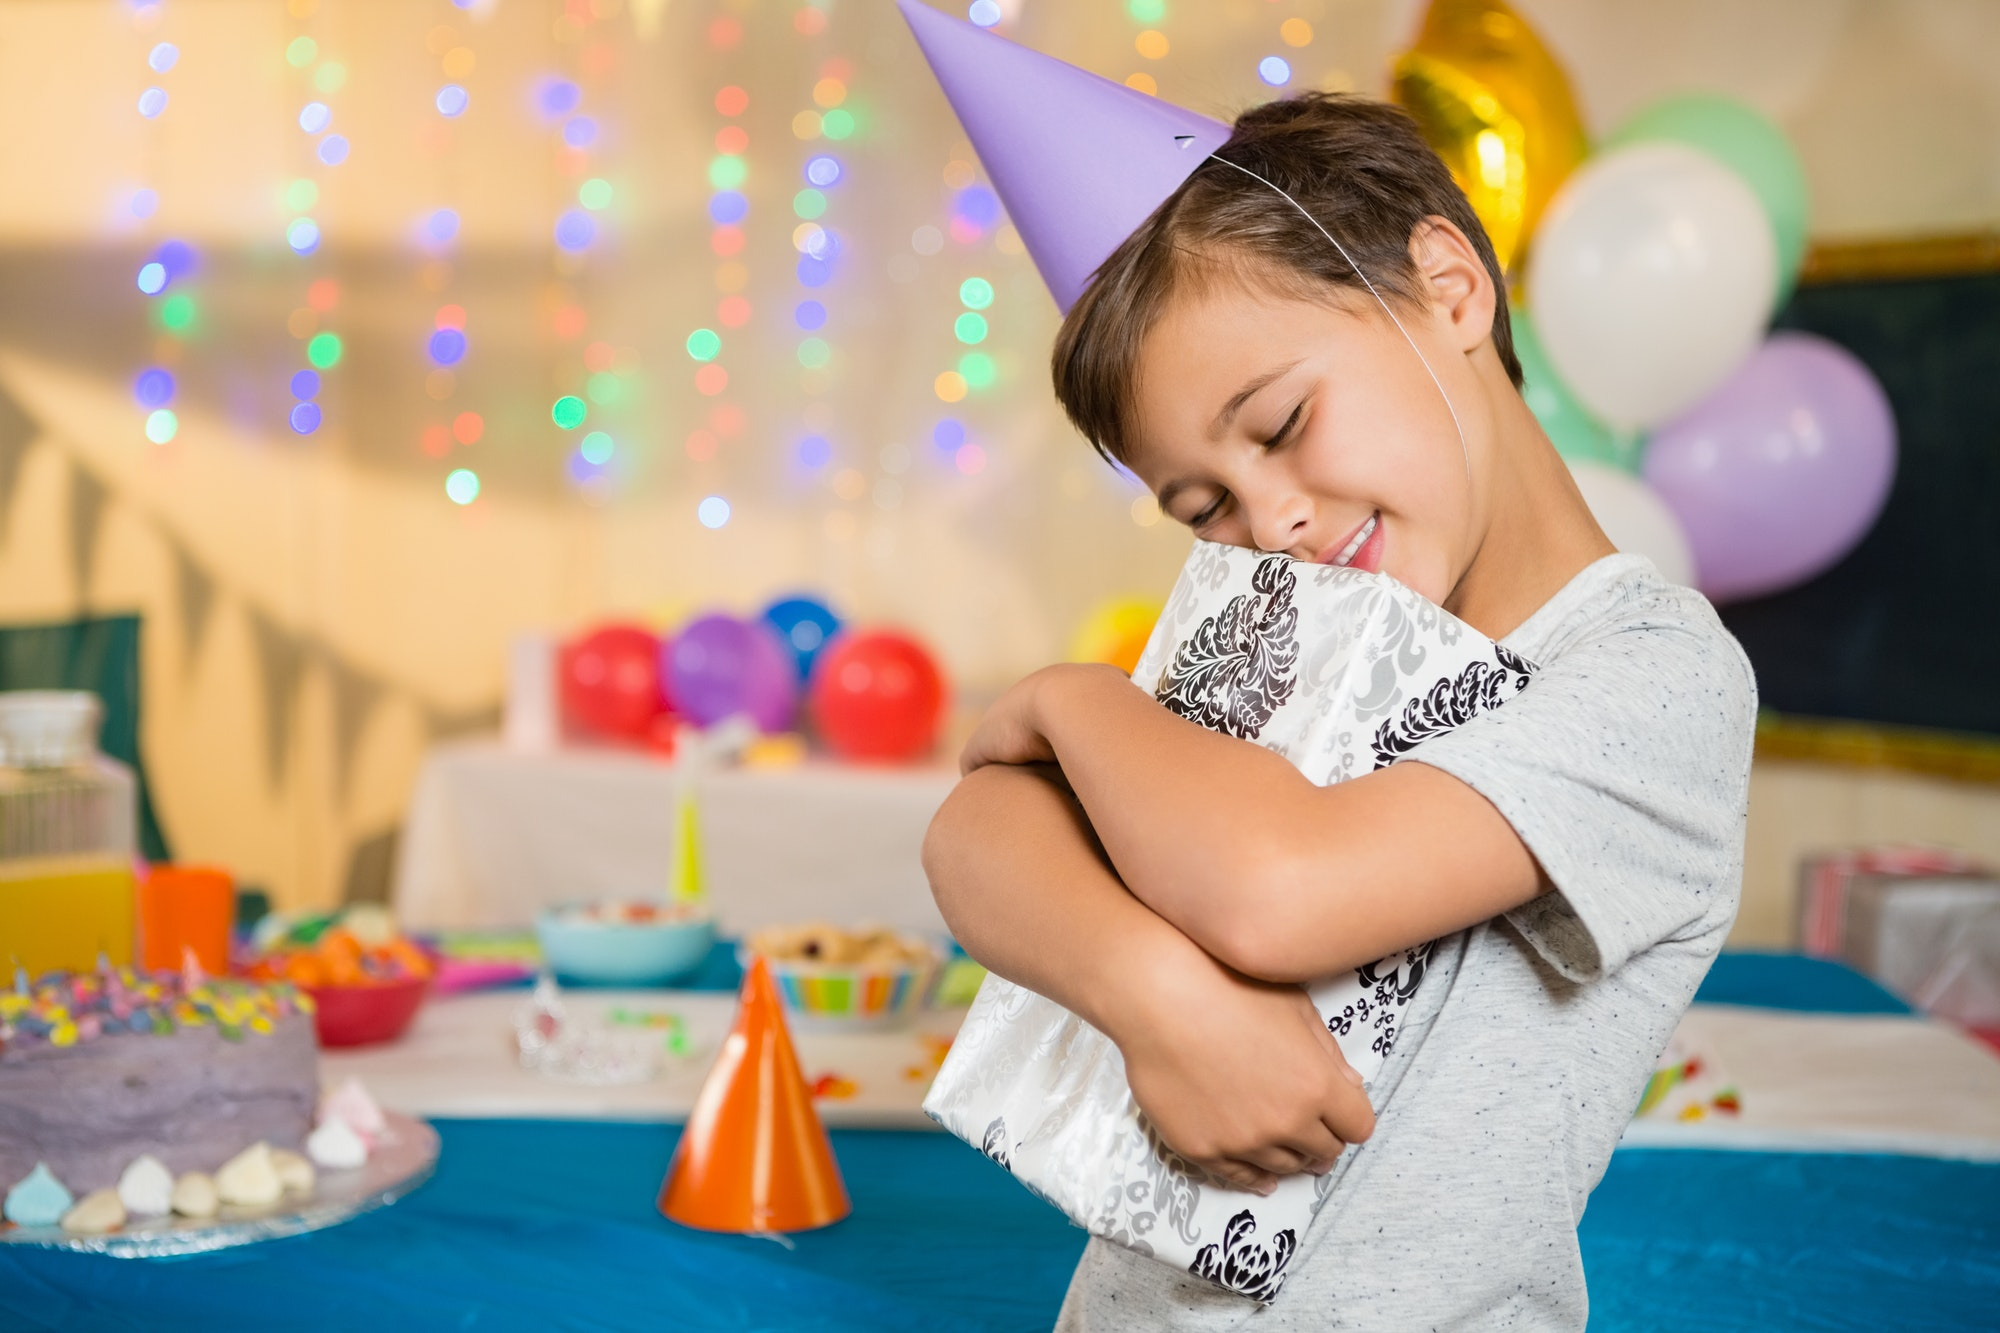 Boy embracing gift box during birthday party